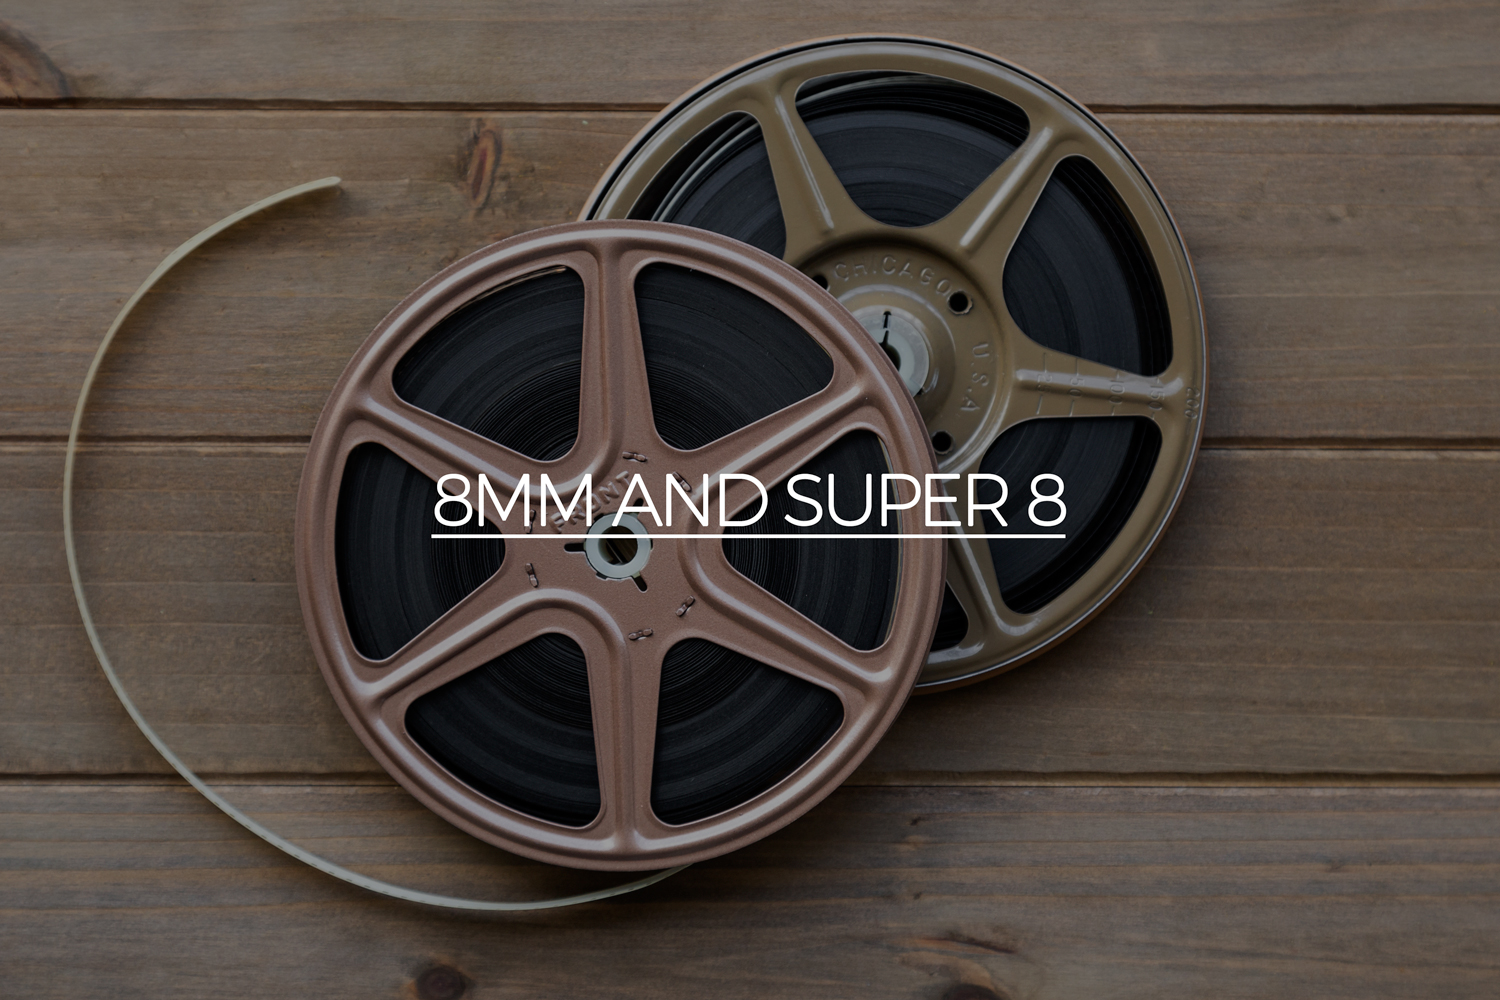 8MM-AND-SUPER-8.jpg